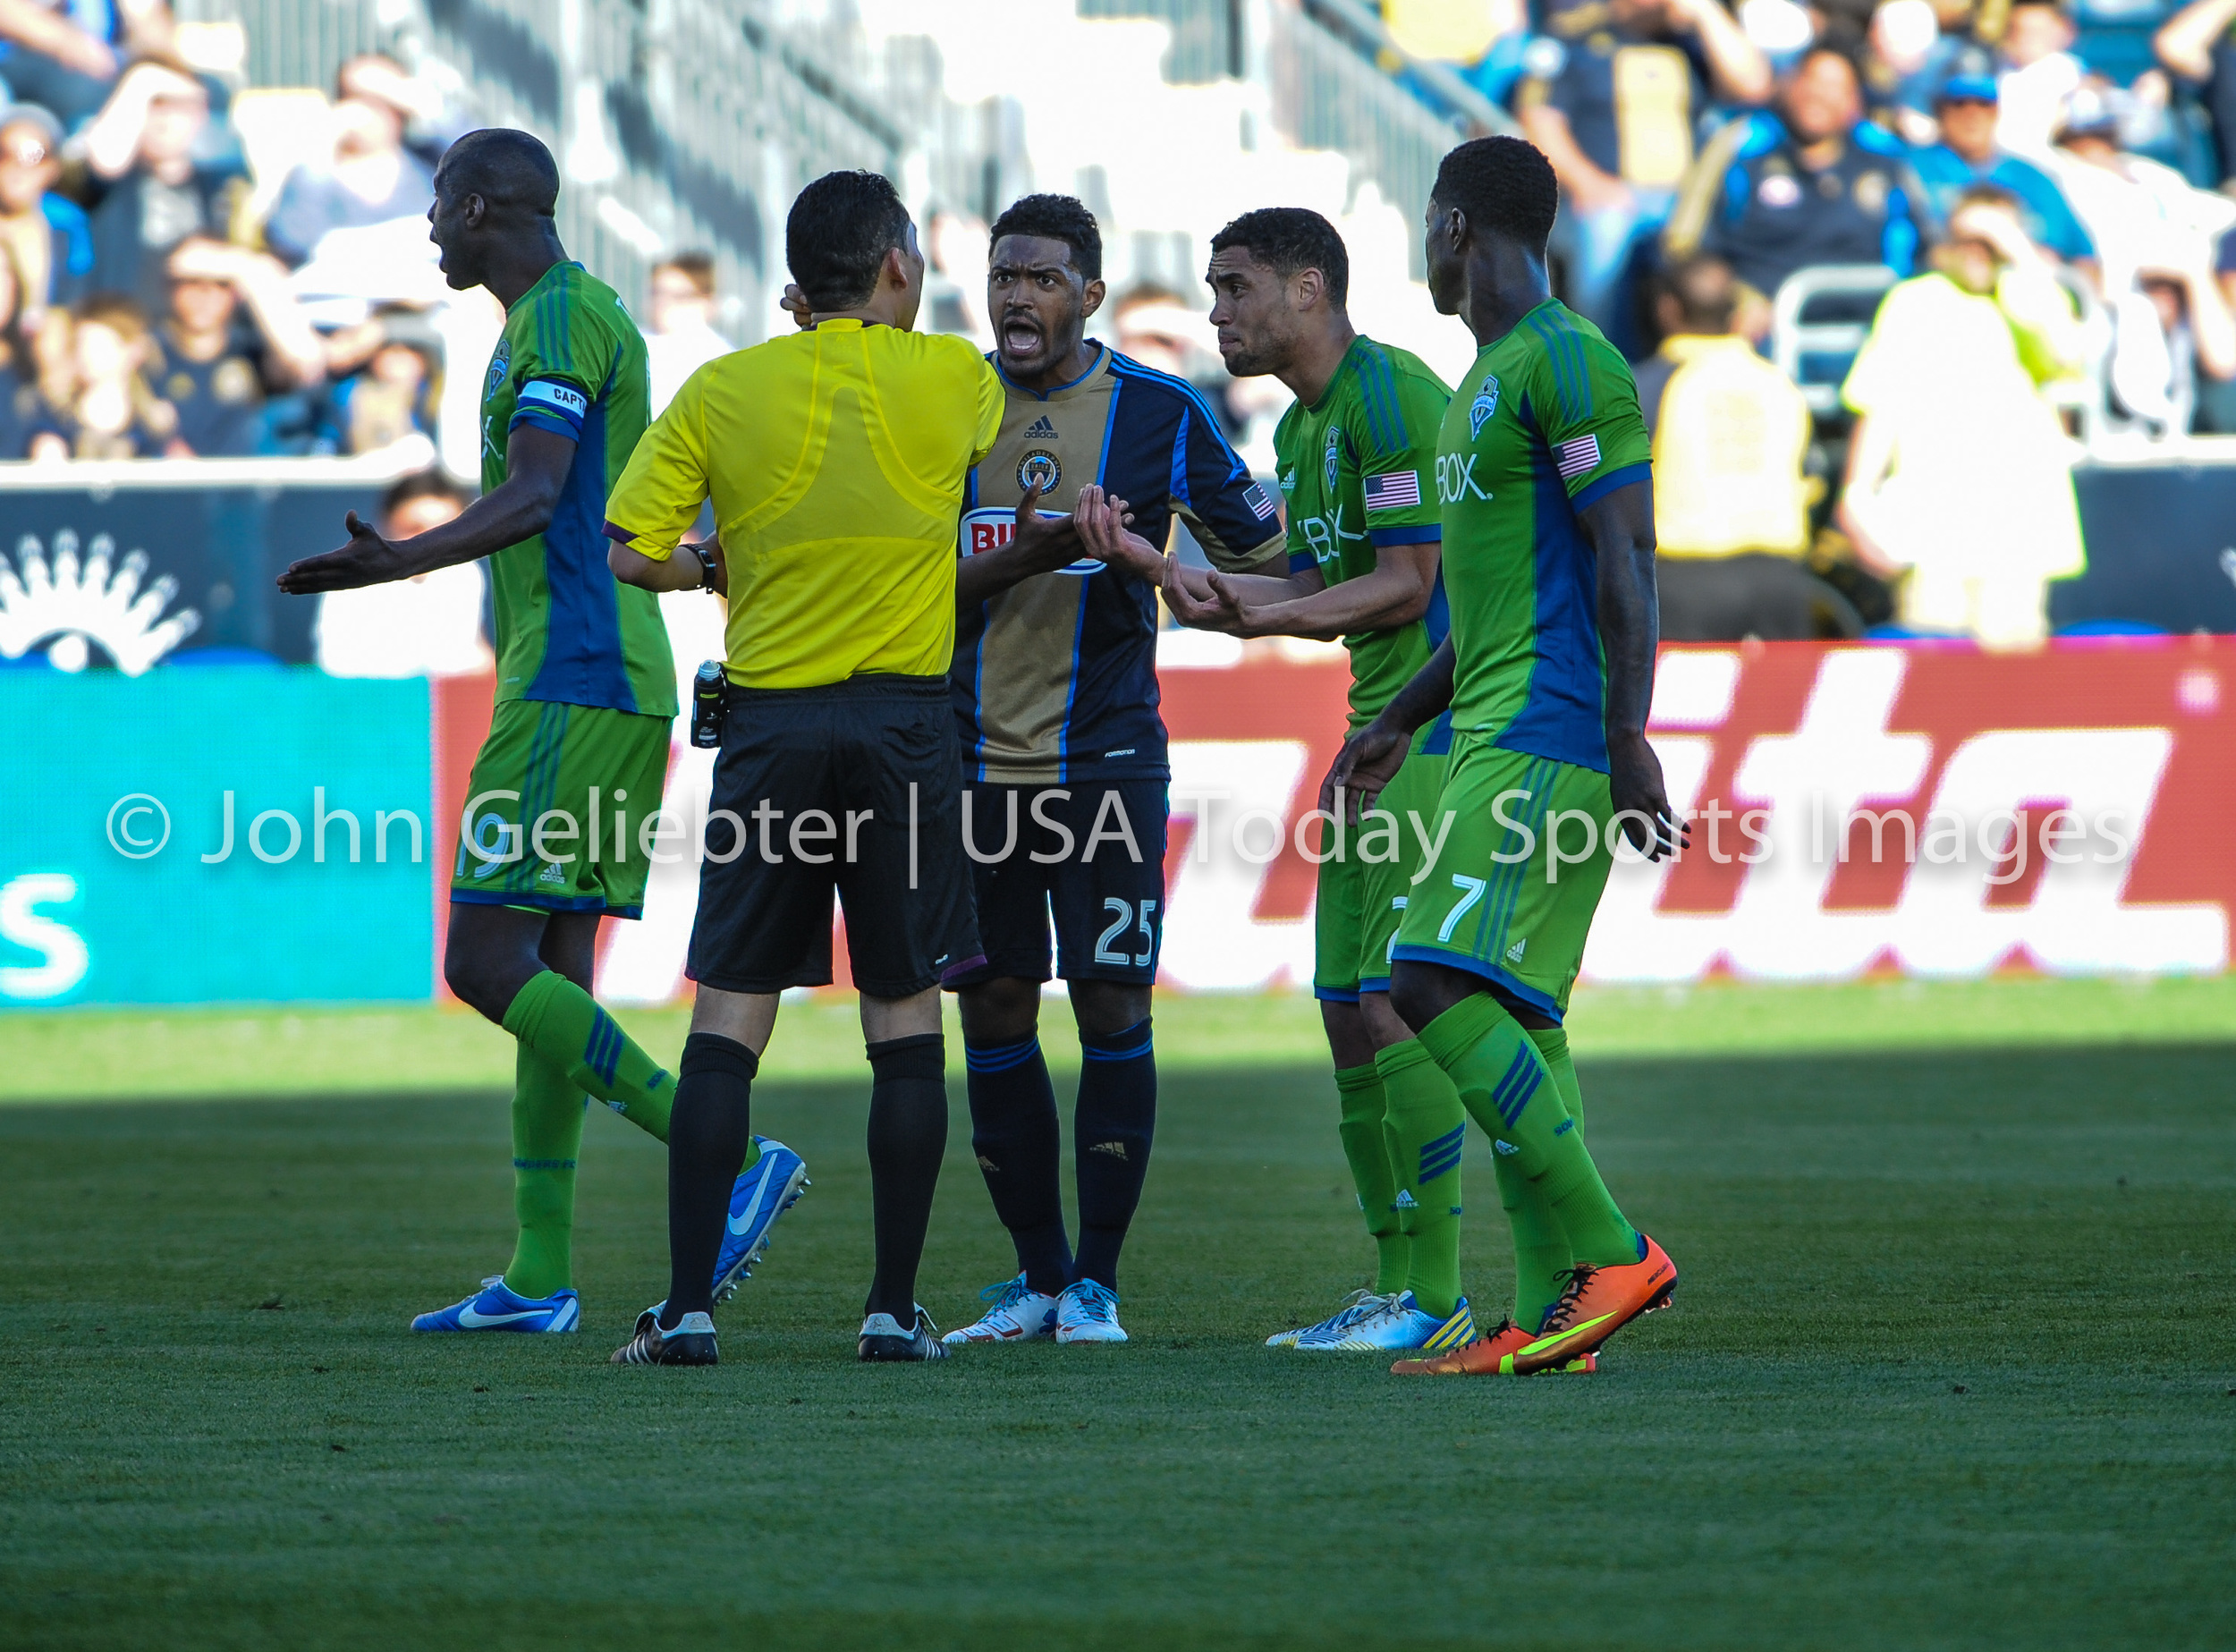 Sounders_Union_May_4_2013_JAG1526.jpg